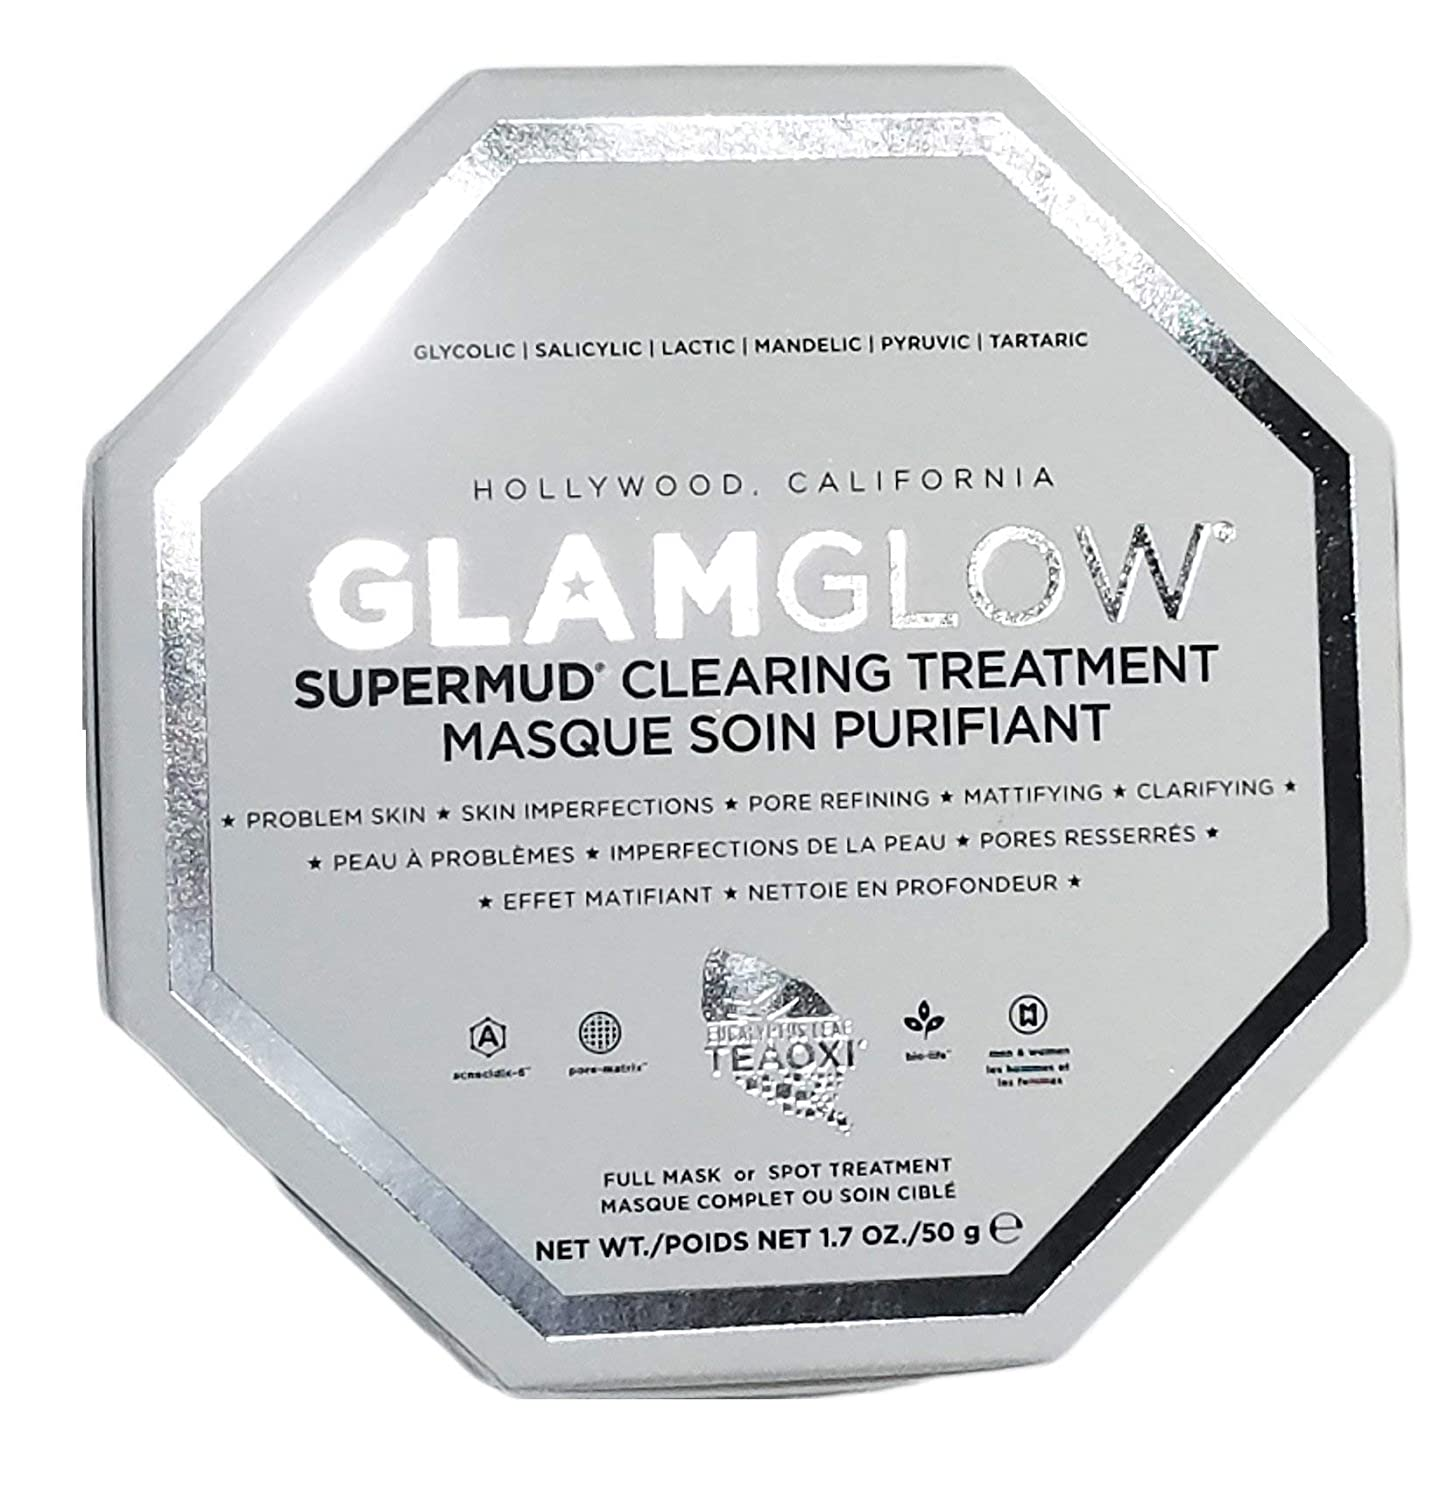 Supermud Clearing Treatment by Glamglow